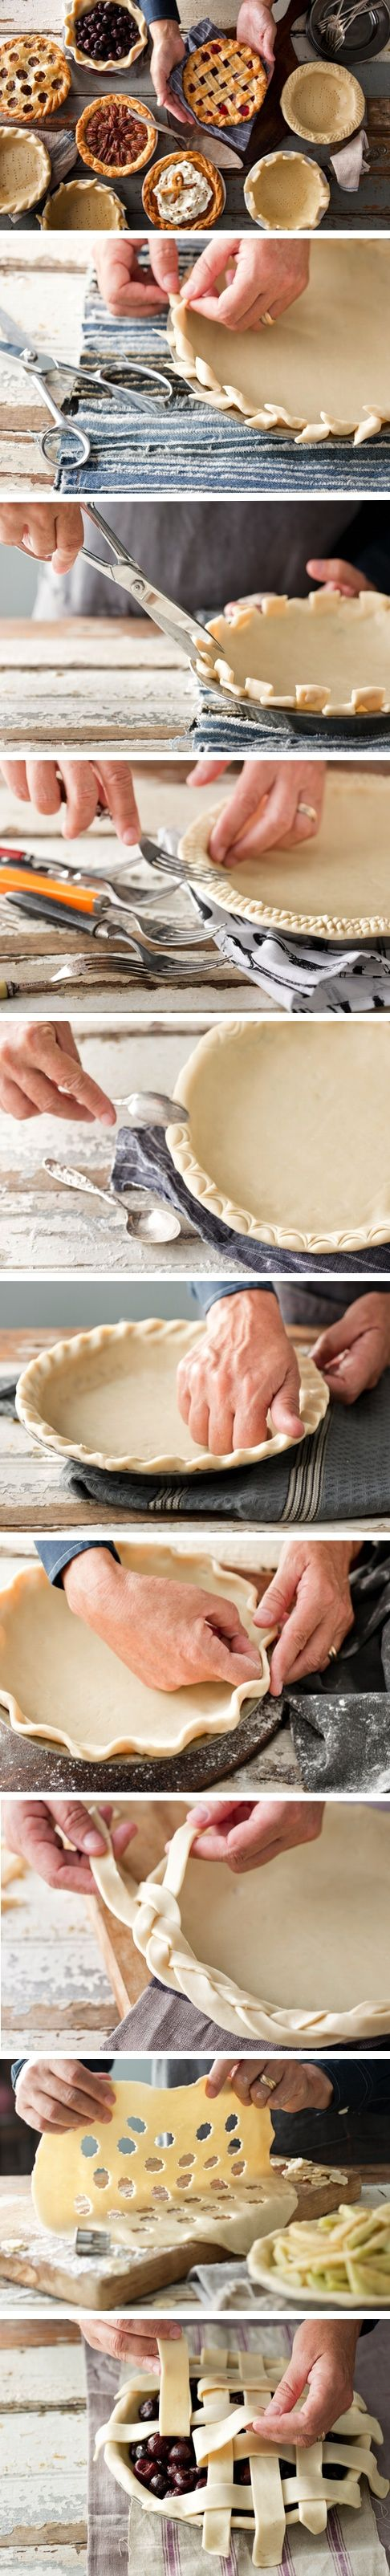 9 Pie crust how-tos and a 120 second video for 20 variations | Relish.com: